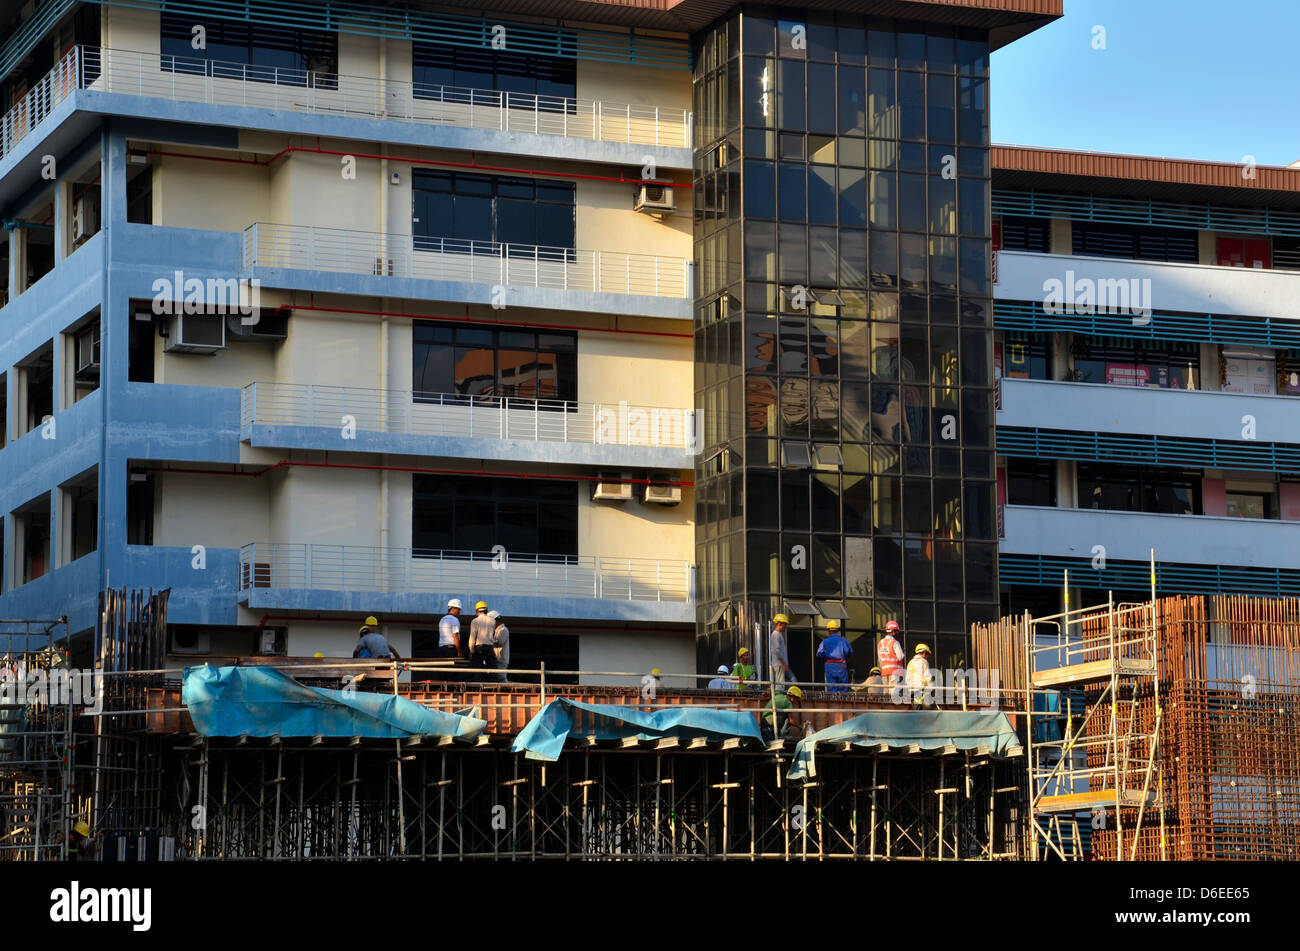 Building construction site with foreman and hard hat workers - Stock Image